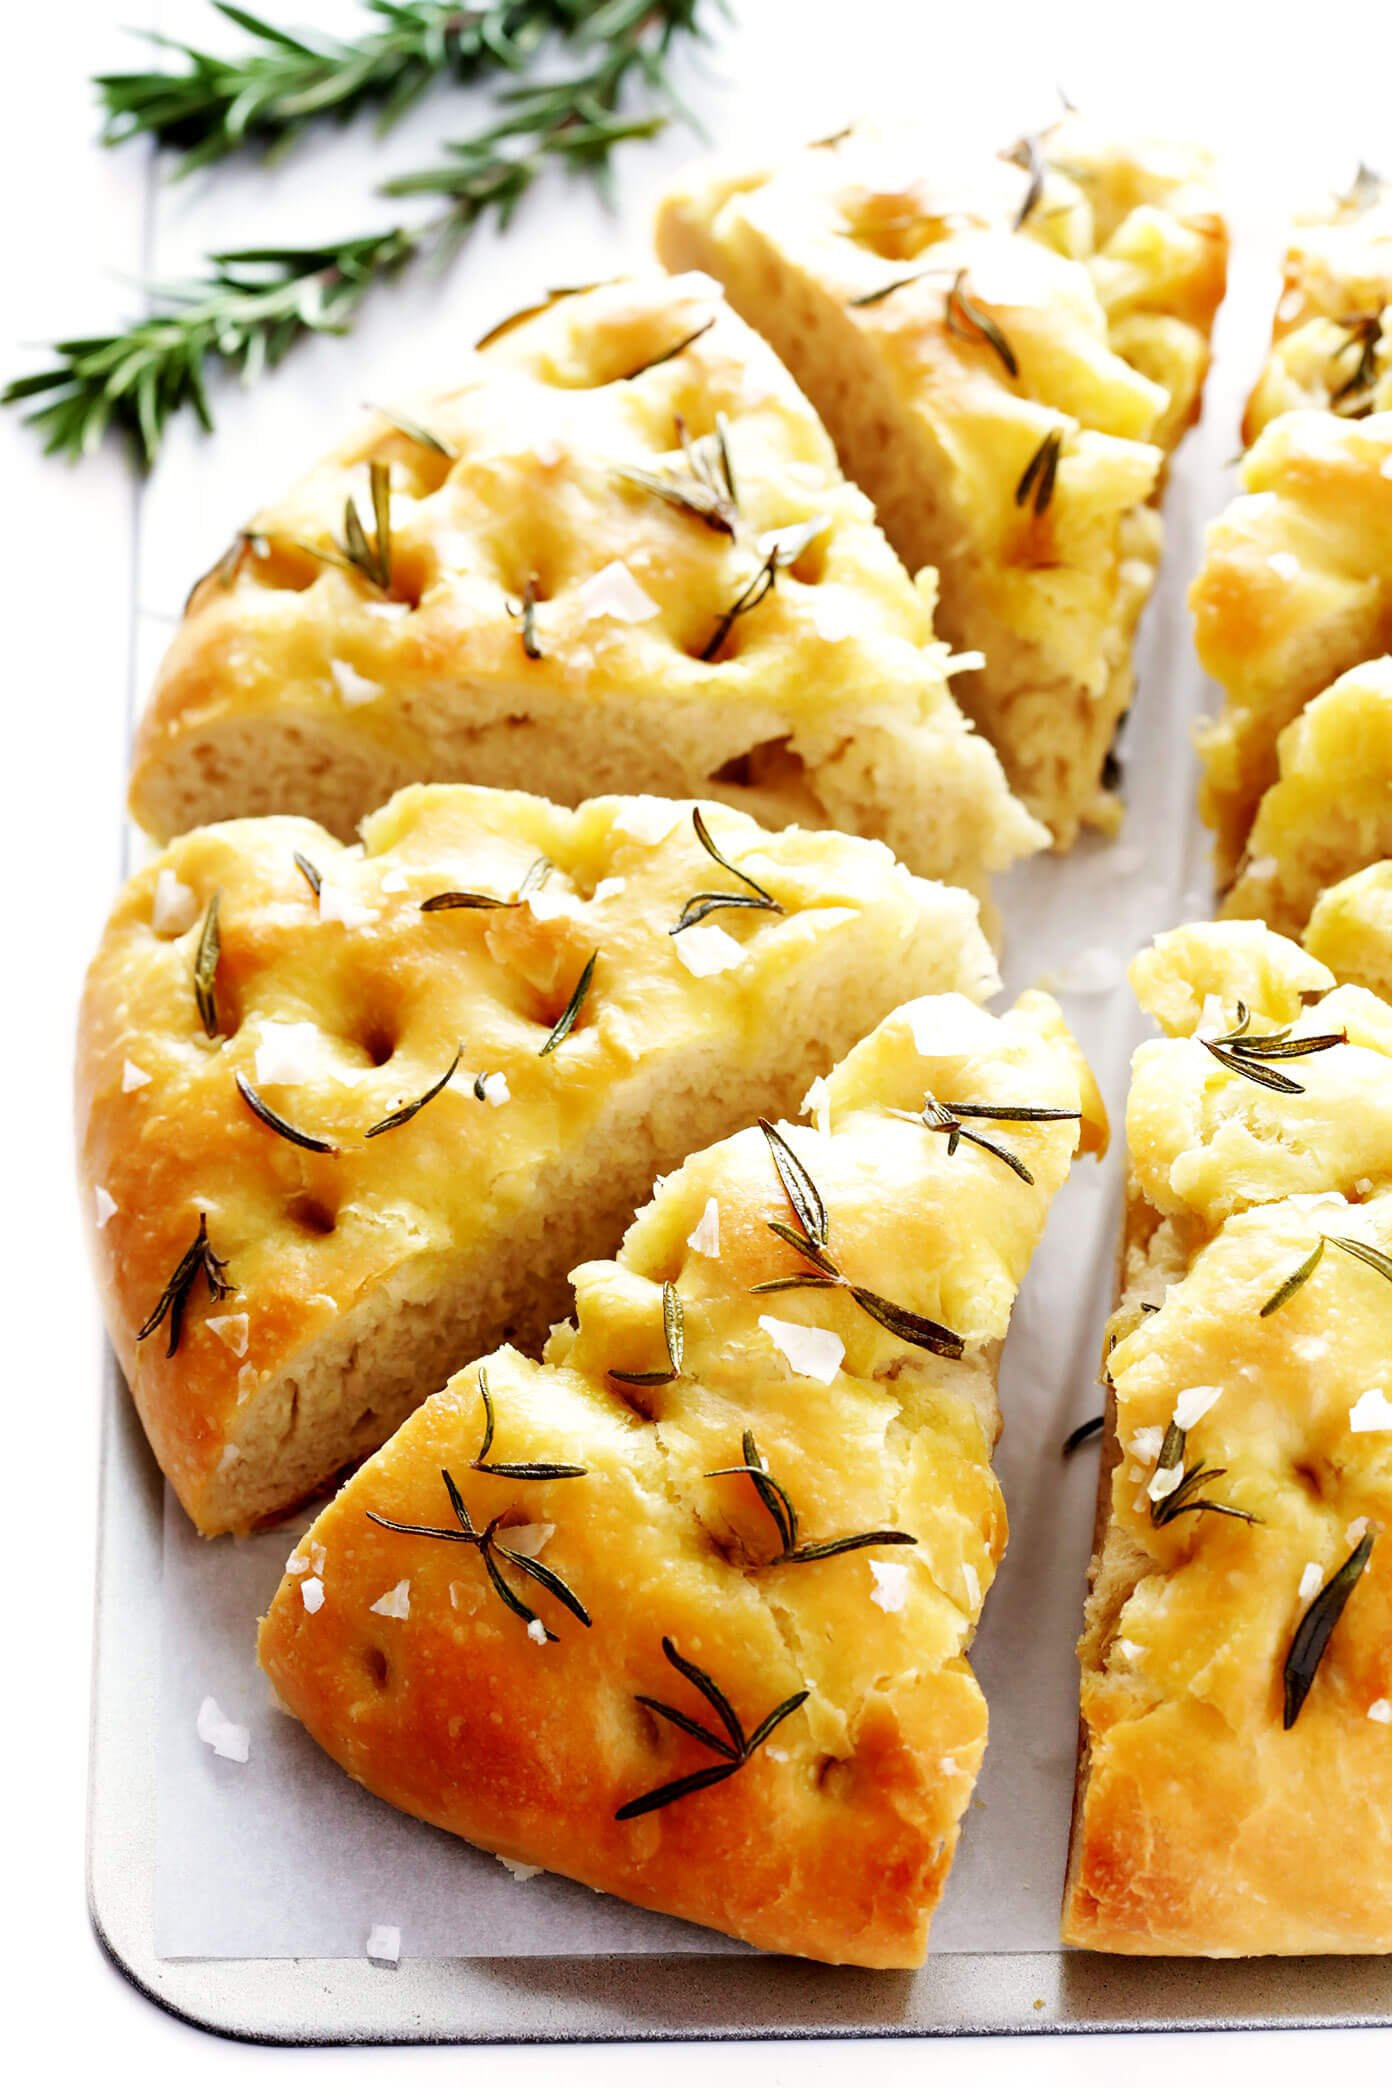 Rosemary Focaccia Bread Recipe